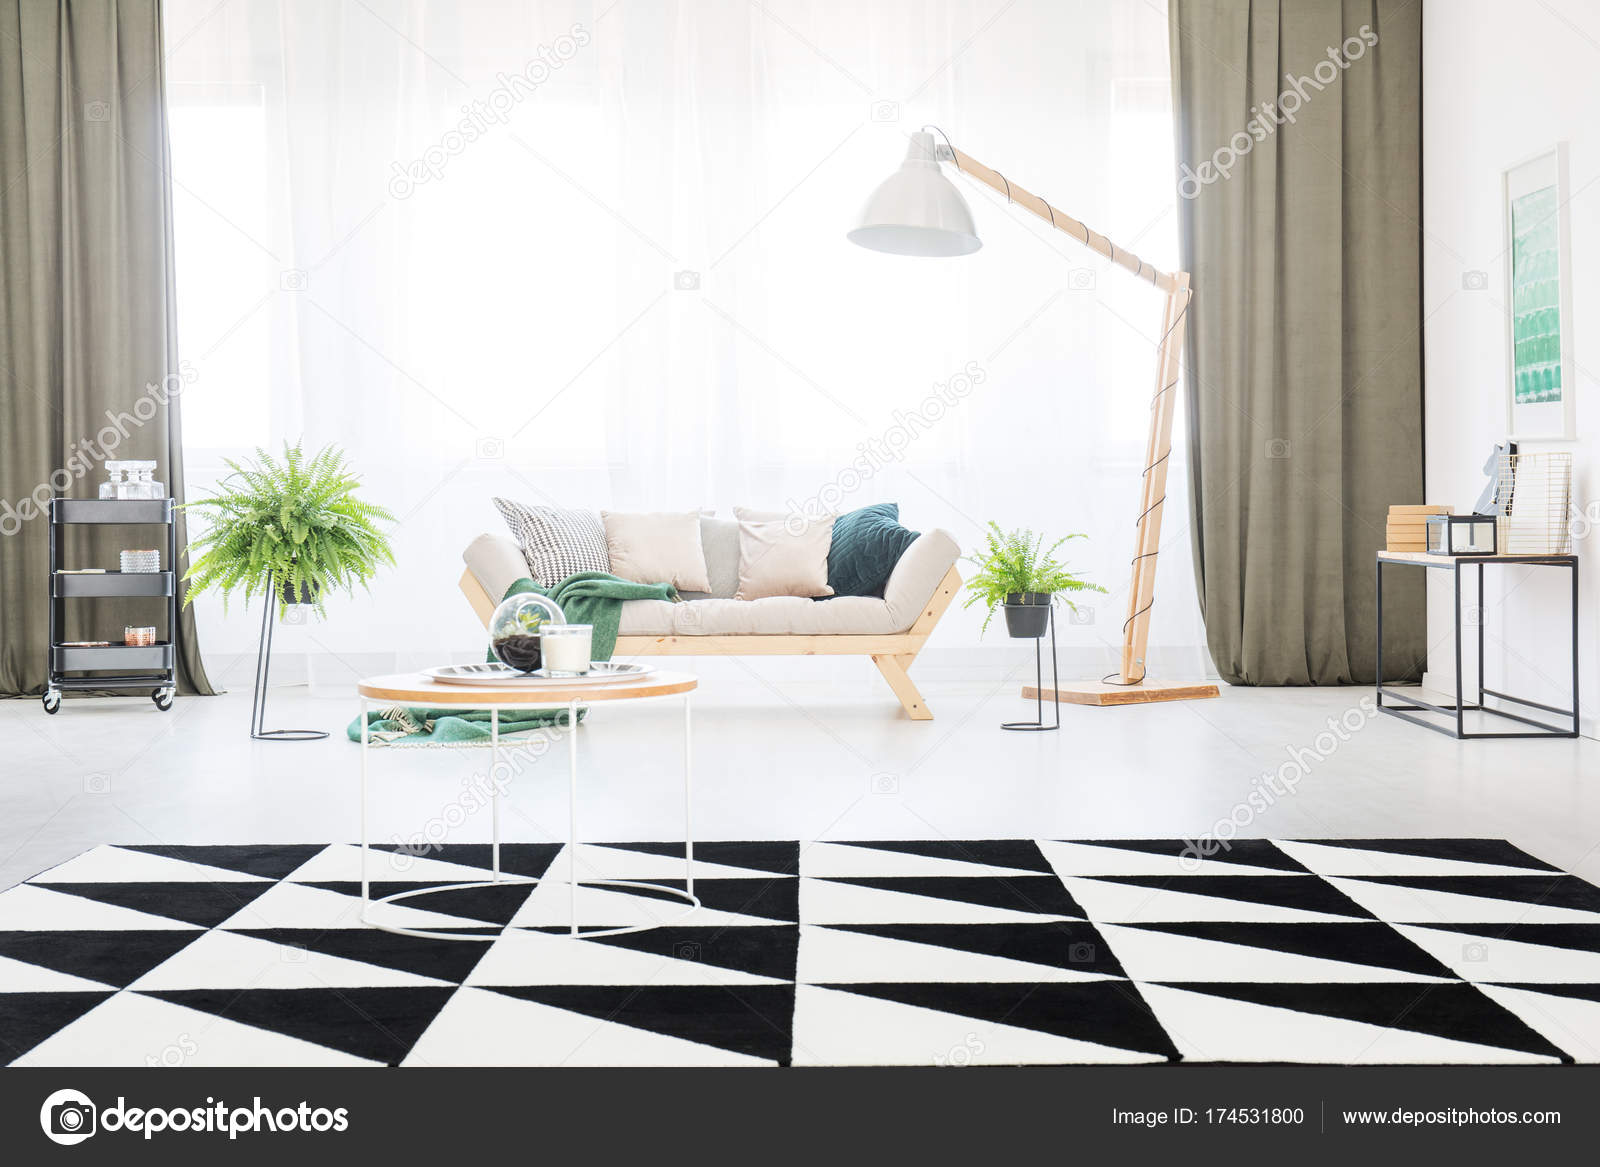 Carpet in bright living room — Stock Photo © photographee.eu #174531800